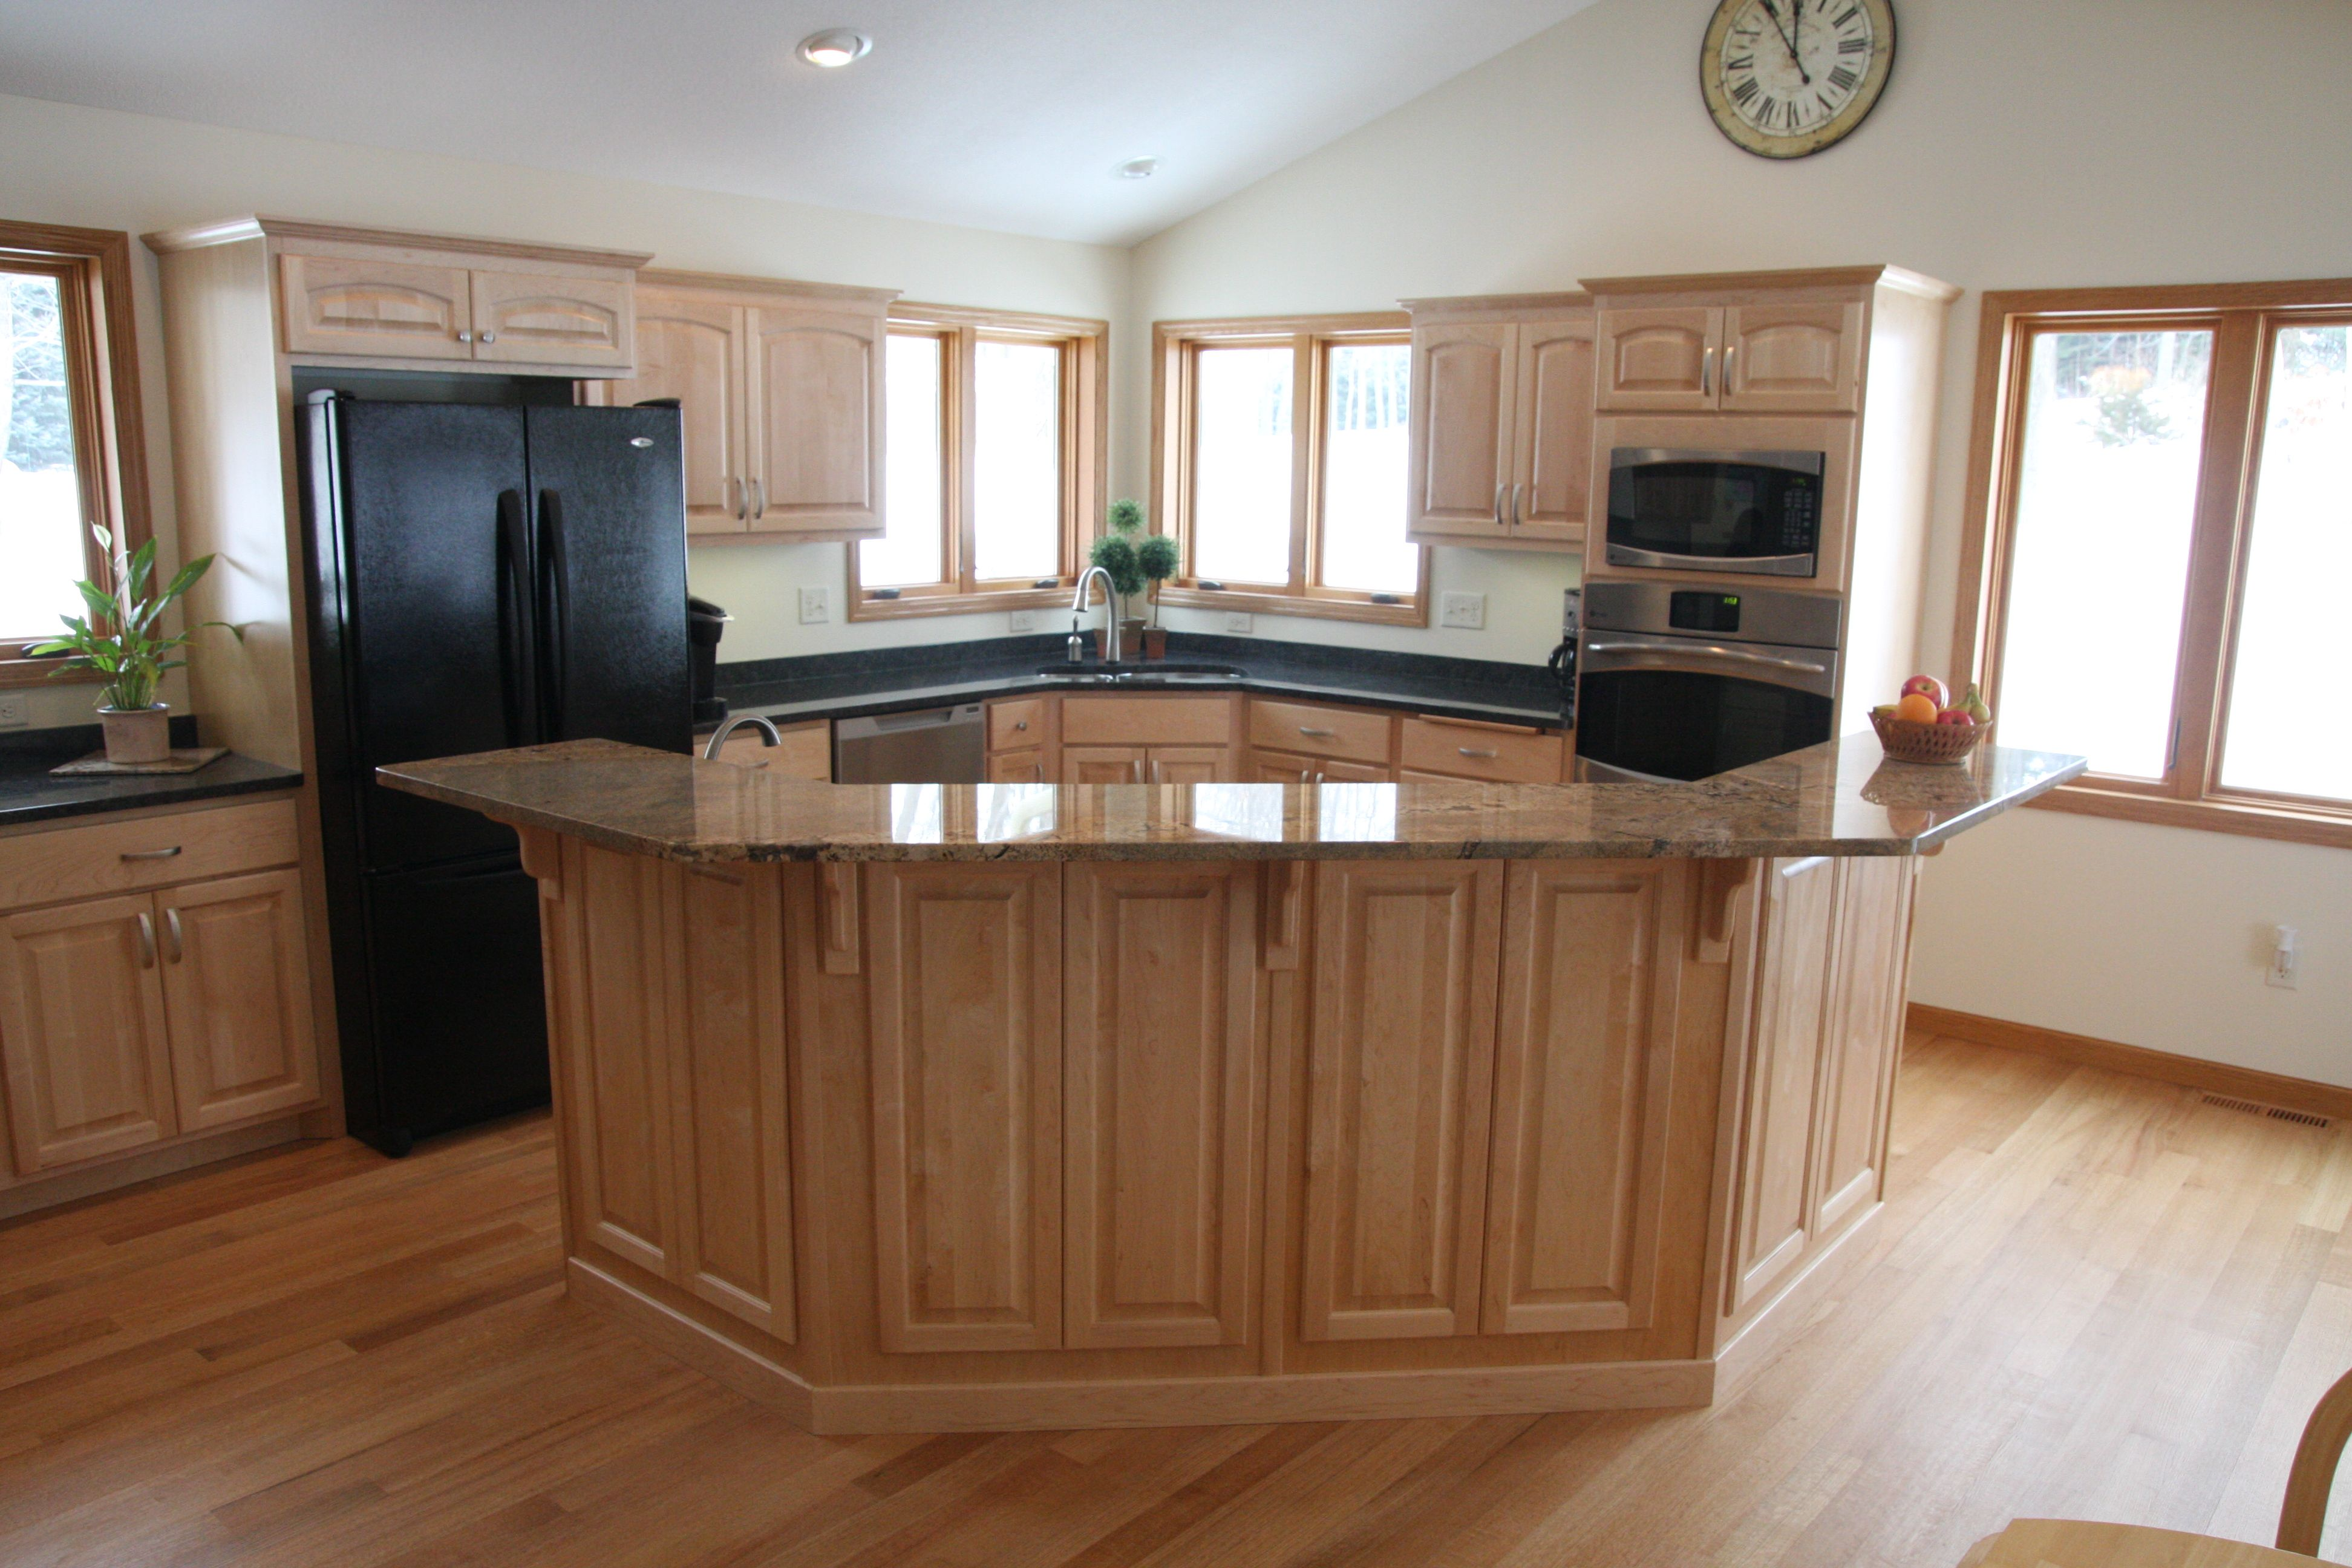 Open kitchen floor plan kitchens pinterest for Pictures of kitchen plans